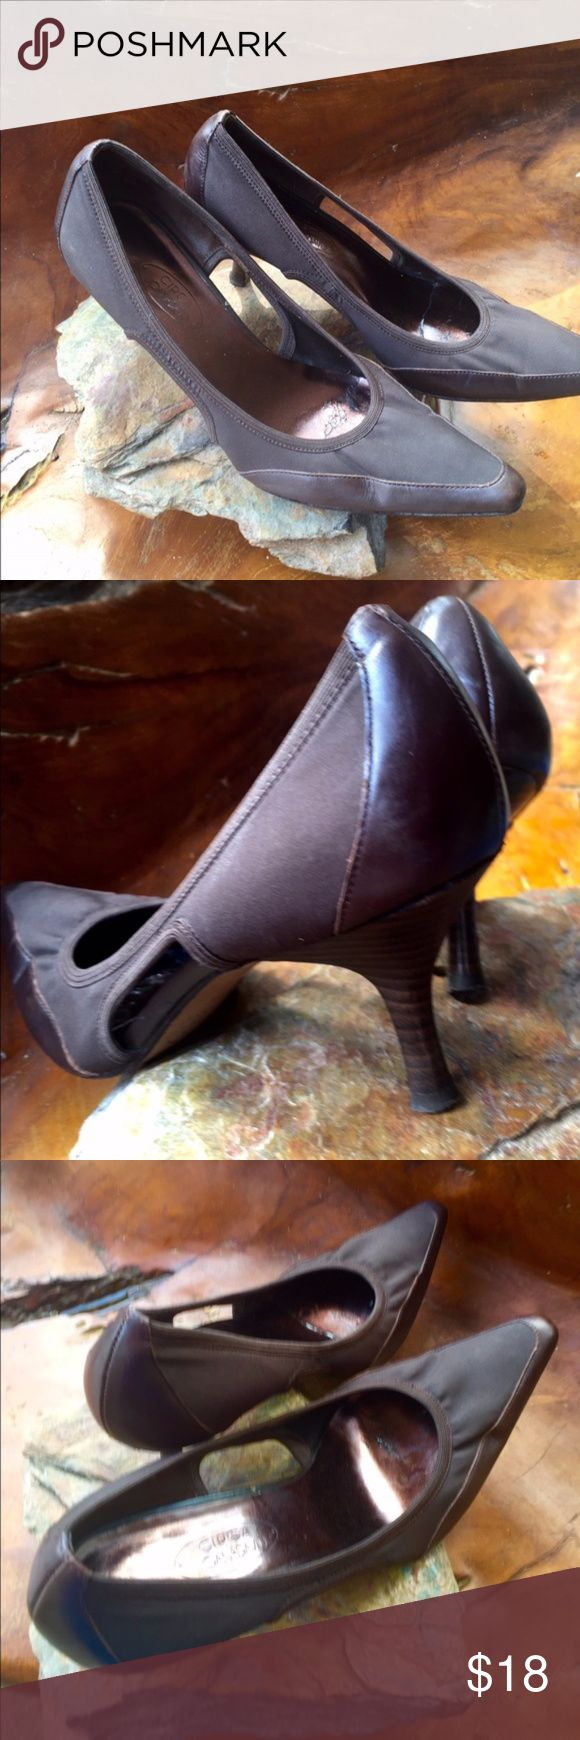 Circa Joan & David Brown Pumps ~Size 8 1/2 These brown Circa Joan & David Pumps have a pointed toe and a 2.75 stacked wood heel. The great thing about these awesome Pumps is the fact that the uppers are made of a stretchy type material. These shoes are classy and sophisticated with the cut outs on each side of the foot. There is a band of elastic around the top. There is some signs of wear on the sole of the shoe but no issues effecting the appearance. The bottom is stamped Circa Joan…